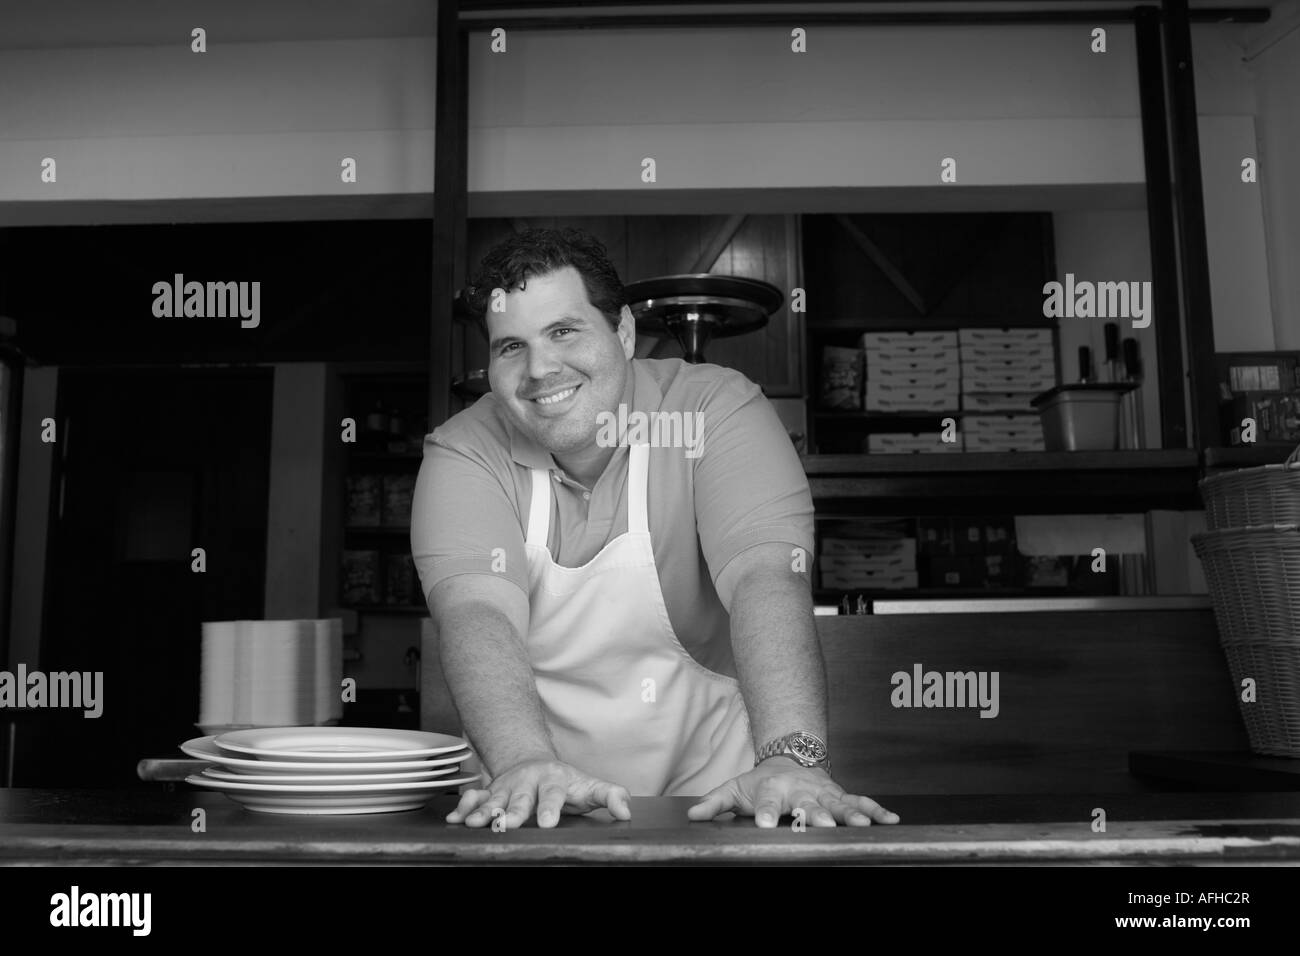 Portrait of chef behind restaurant counter - Stock Image